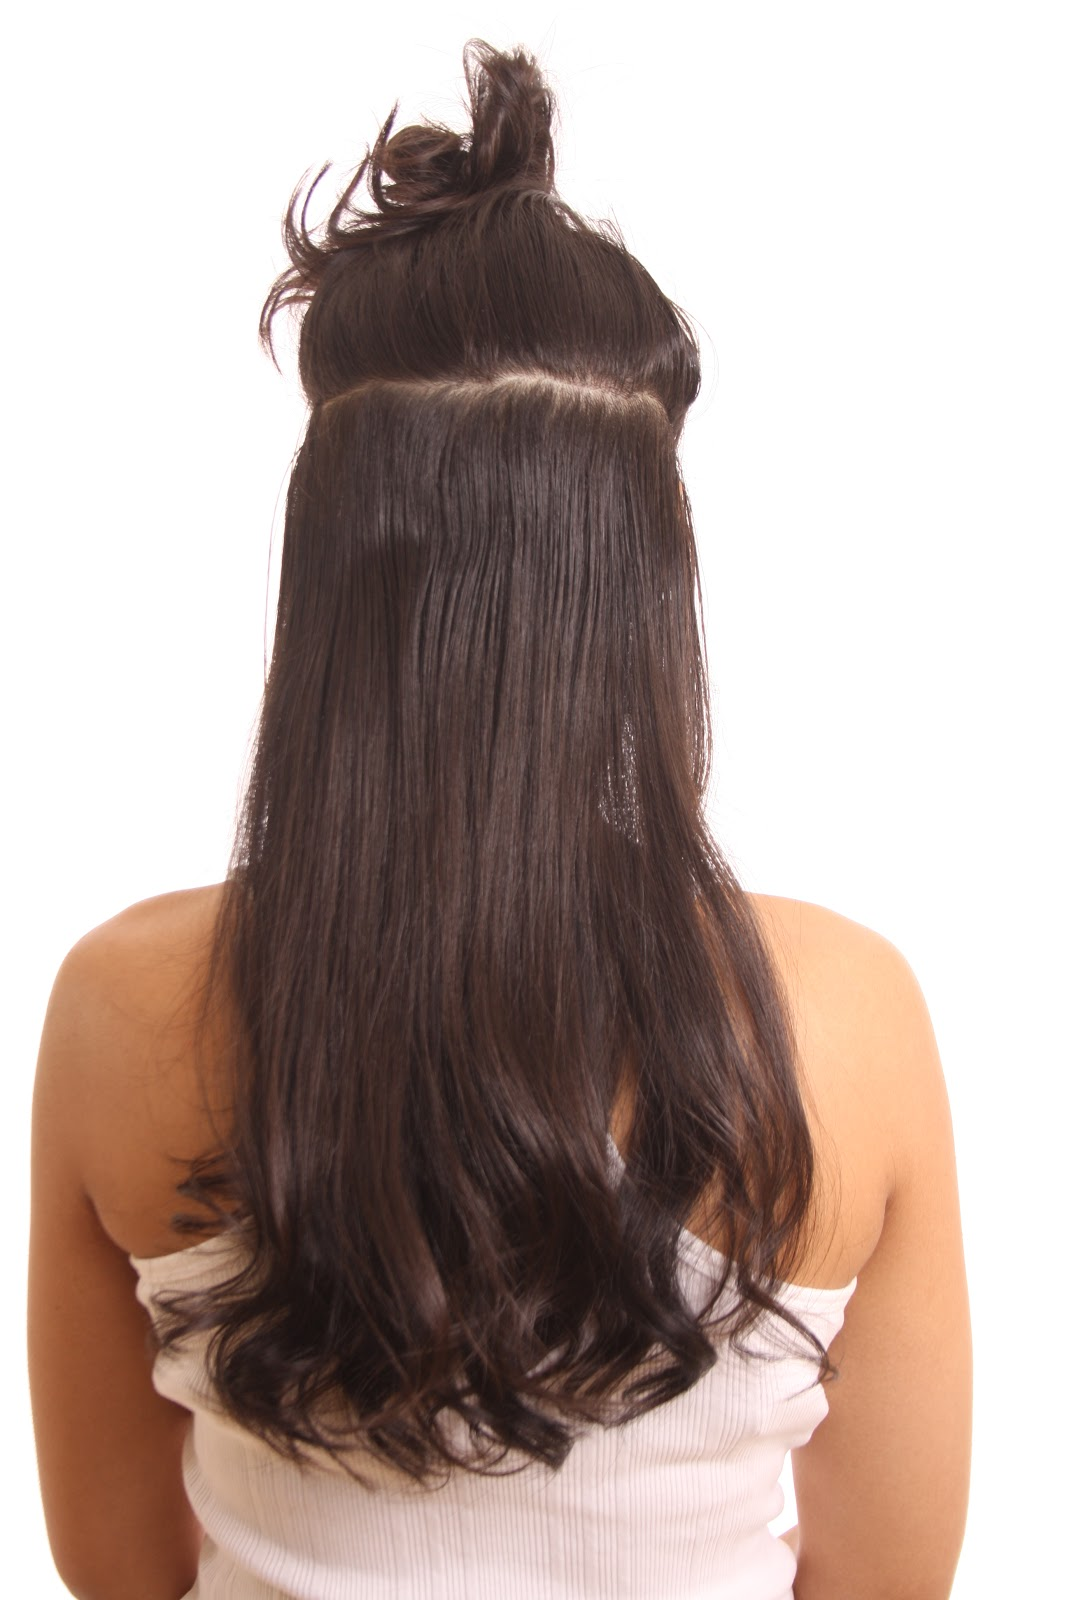 O Snap Clip In Hair Extensions How To Snap On O Snap Clip In Hair